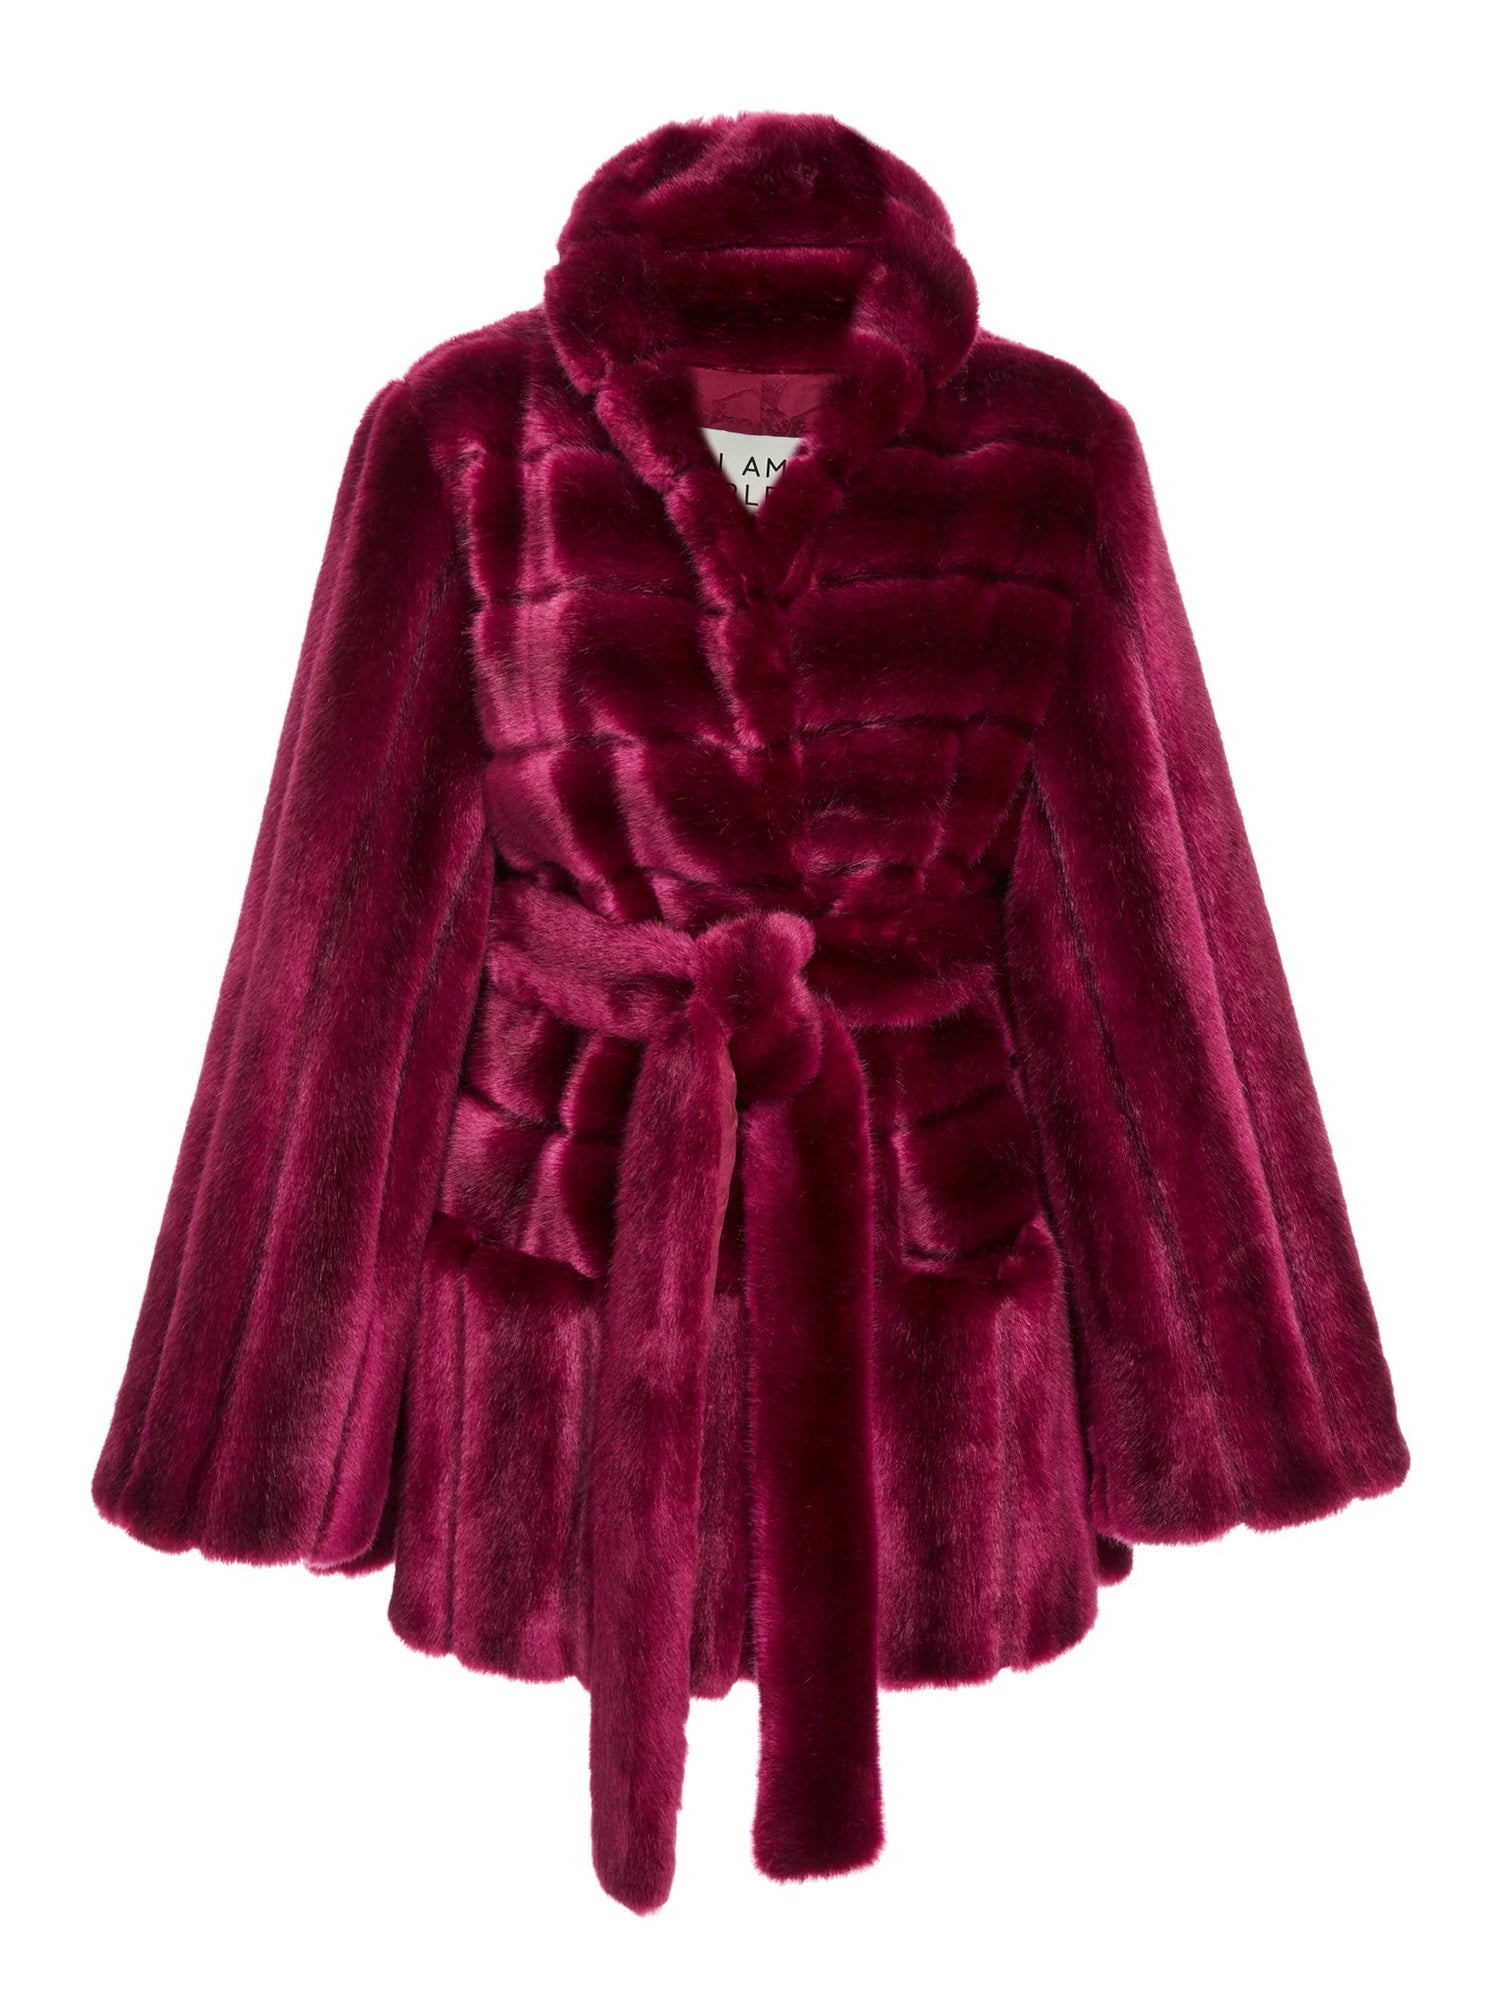 A Packshop Of Marei1998 Yoshino Cot In Bold Raspberry Hue. Perfect For Cold Weather, This It Is Made From Plush Faux Fur, Which Feels So Warm And Comfortable. Cut In A Slight A-Lined Shape And Fully Lined, It Is Ideal For Smooth Layering. Front View.